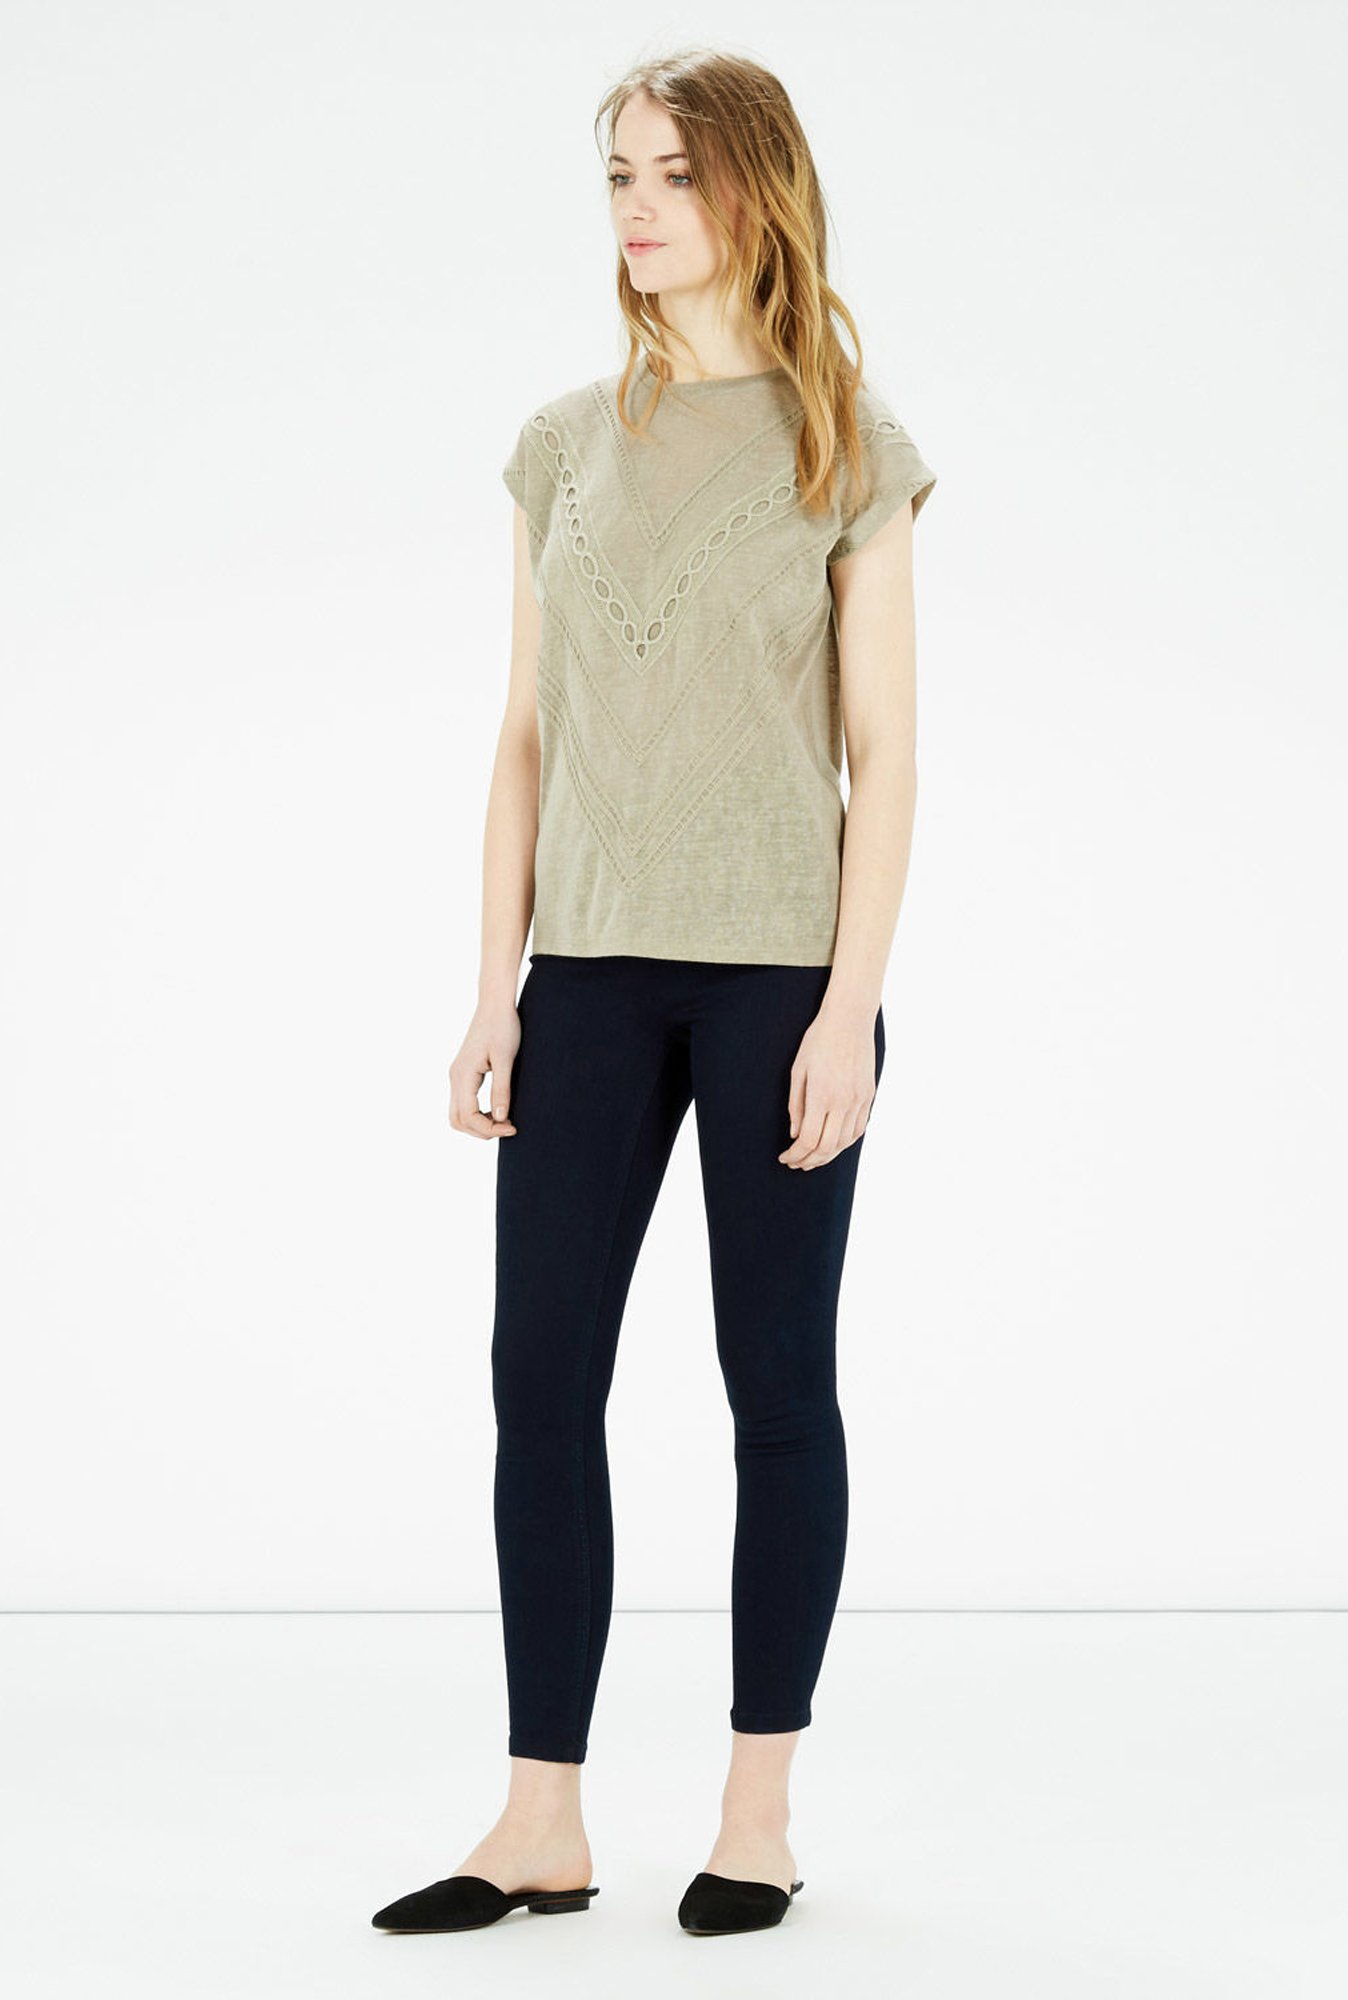 Warehouse Grey Embroidered Top